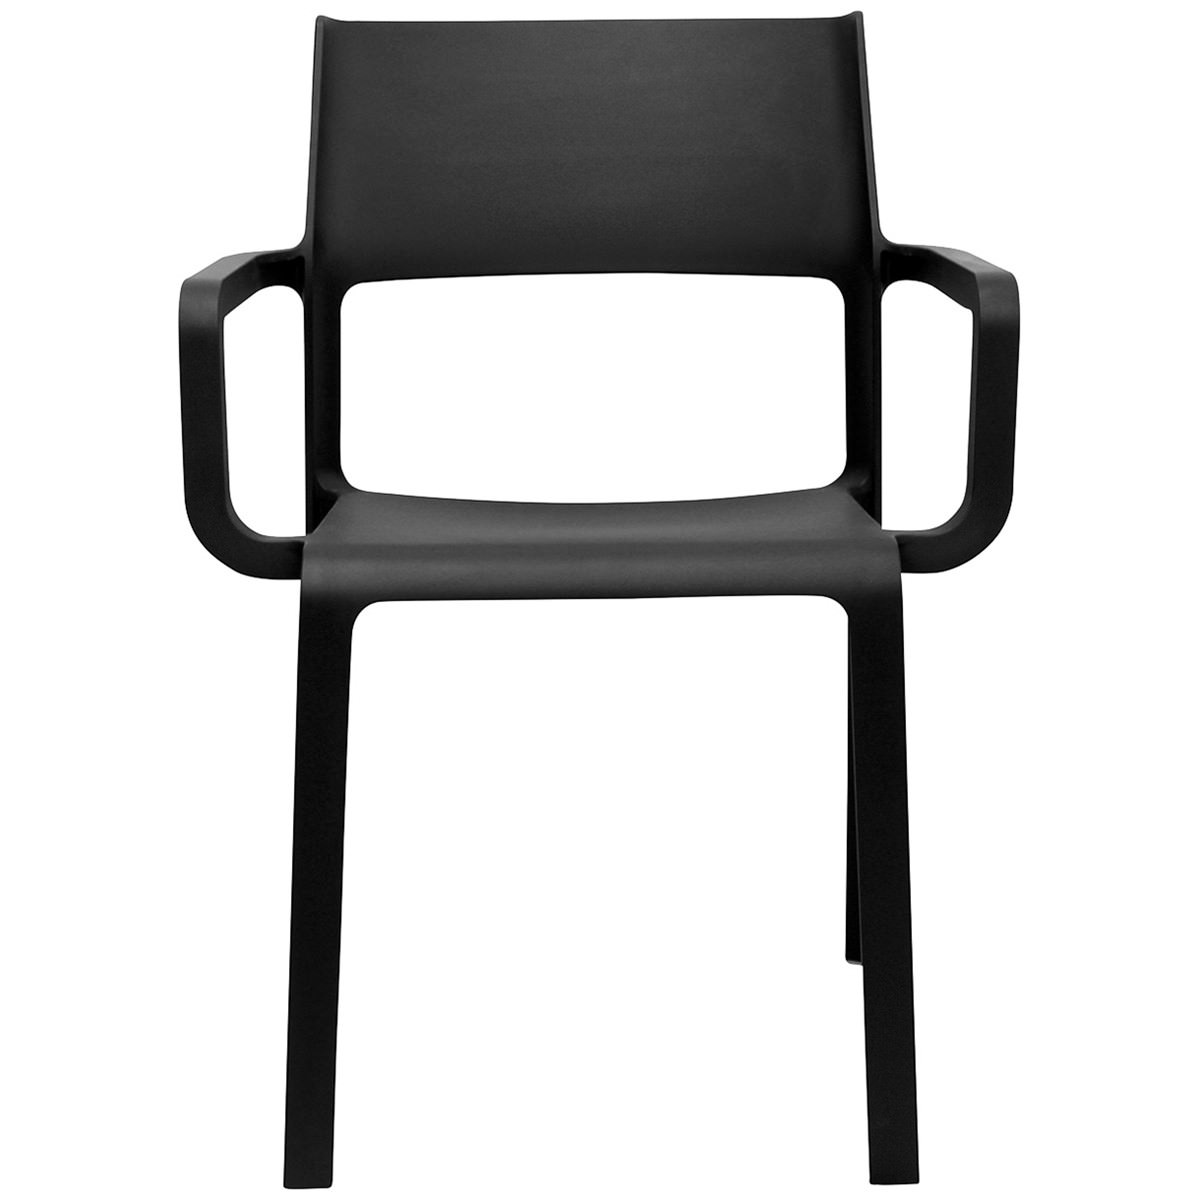 Trill Italian Made Commercial Grade Indoor / Outdoor Dining Armchair, Anthracite